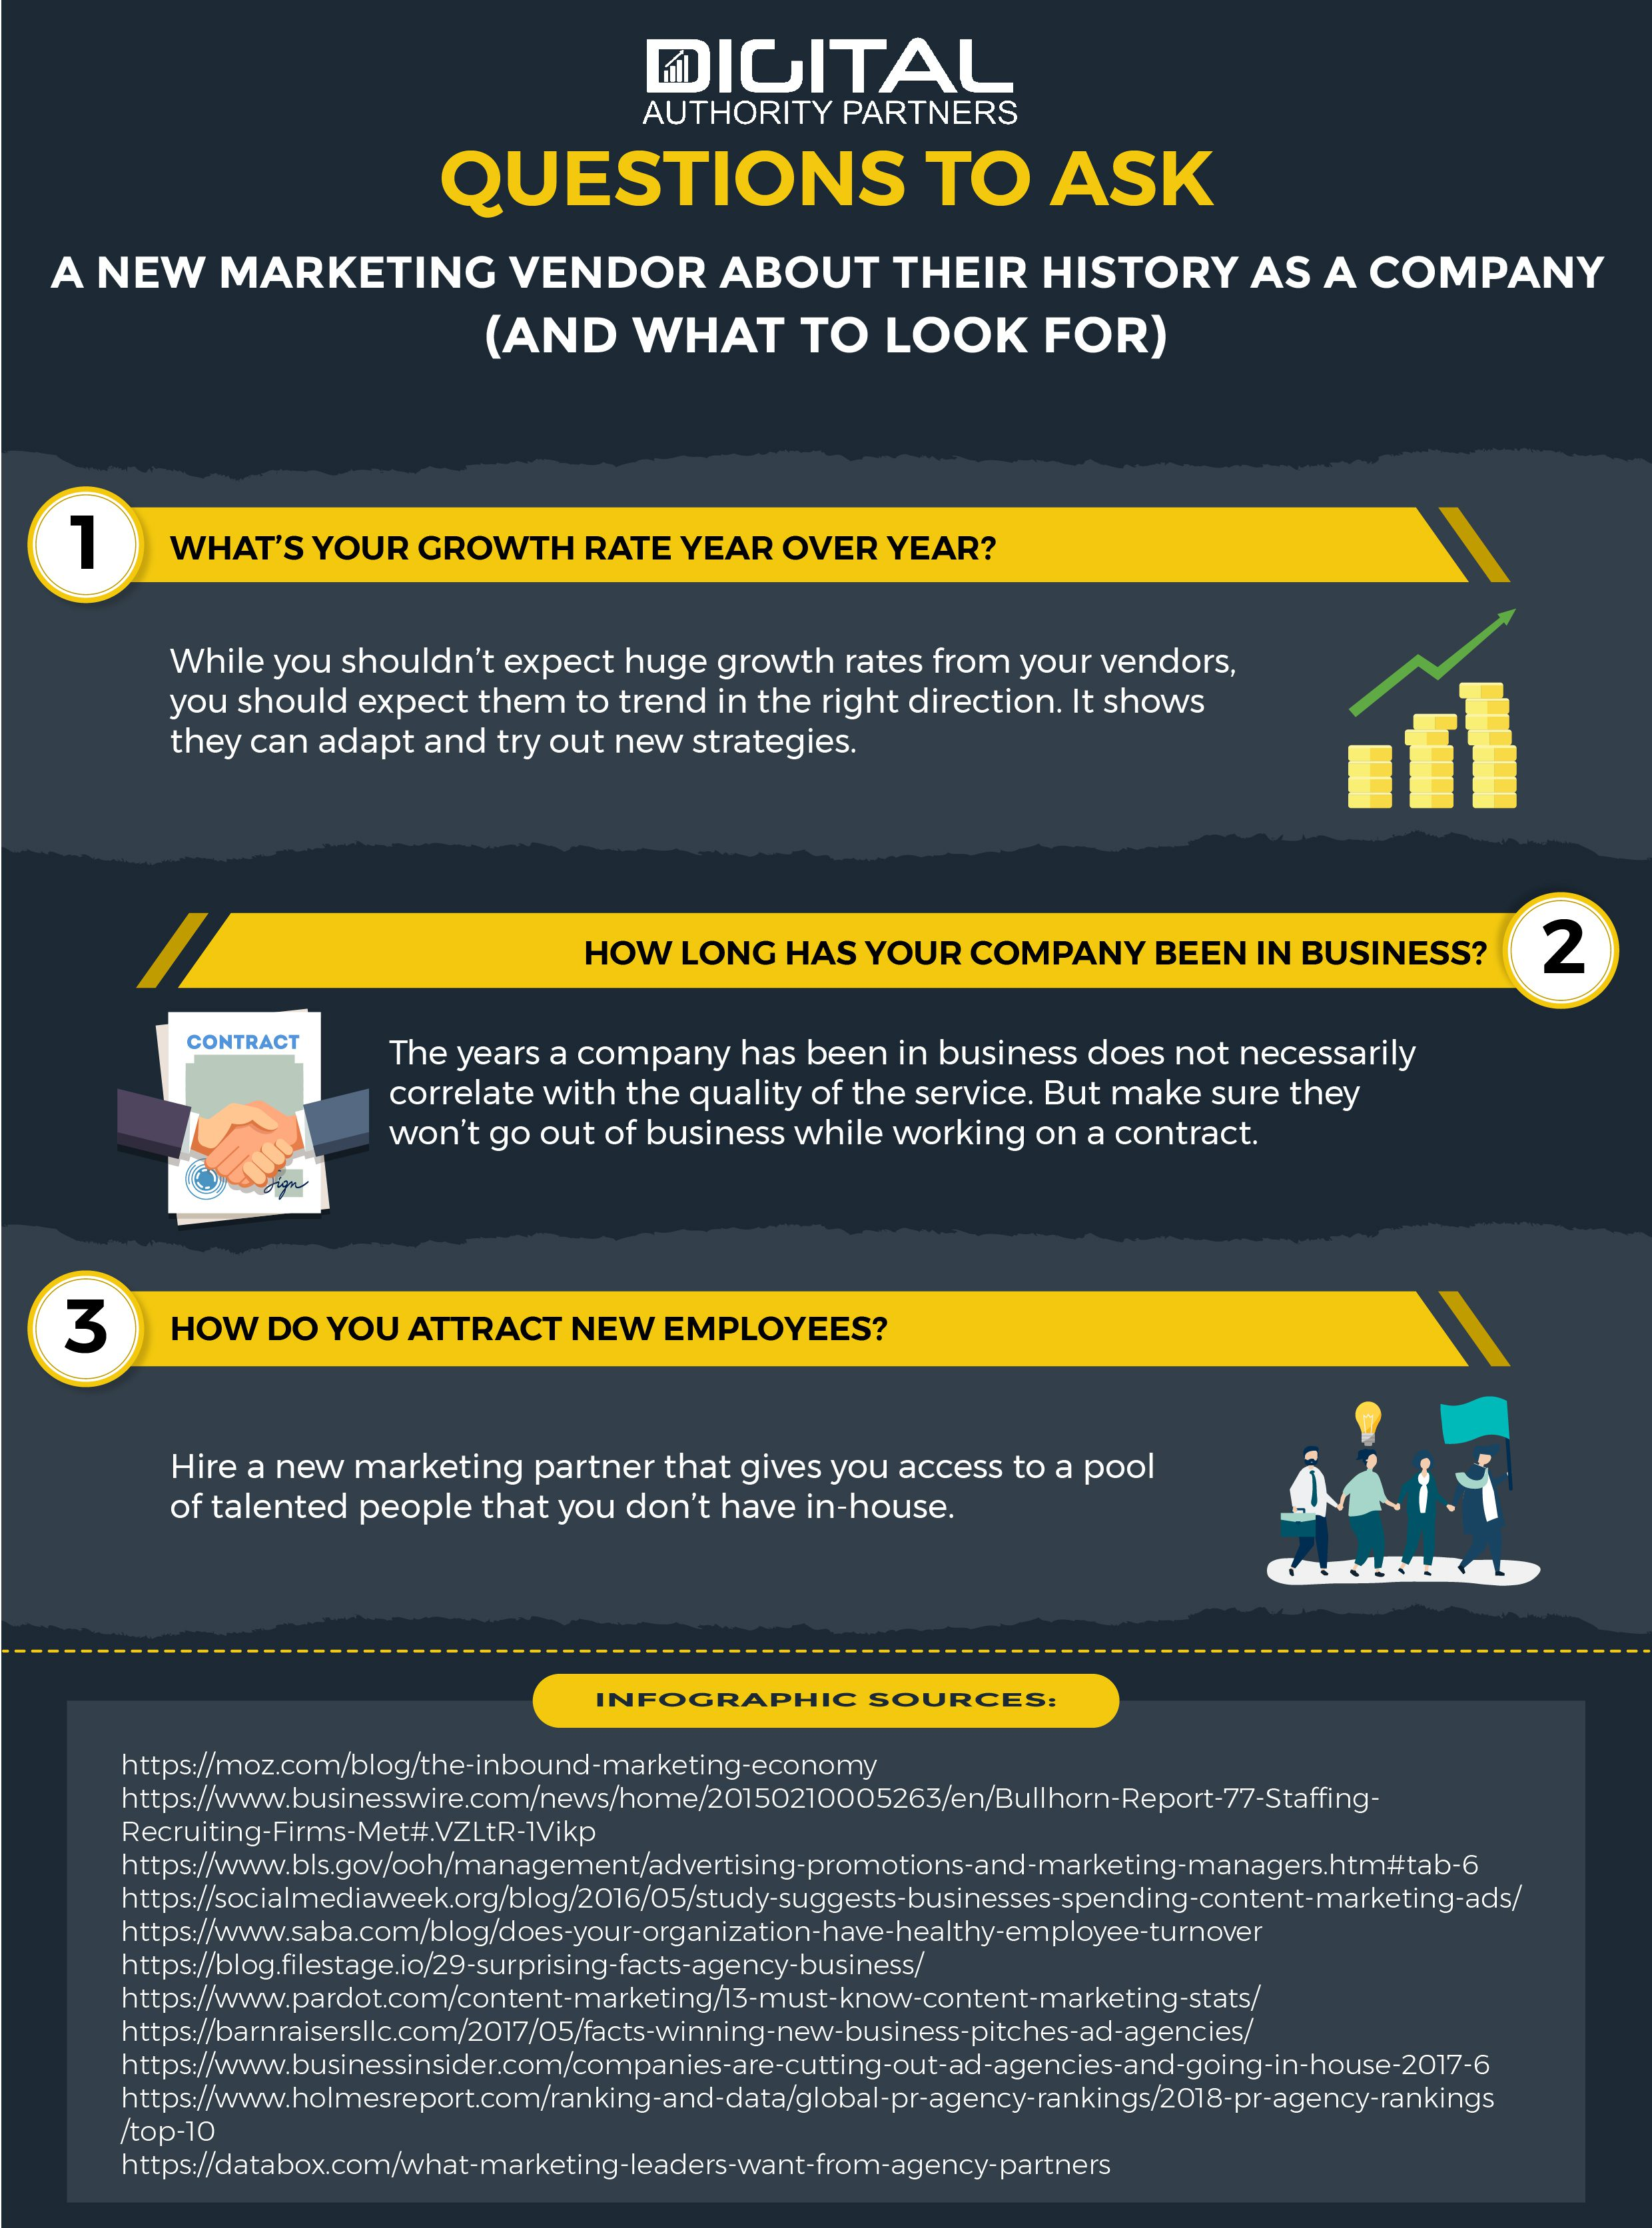 infographic: questions to ask a new marketing vendor about their history as a company: 1. What's your growth rate year over year? 2. How long as your company been in business? 3. How do you attract new employees?